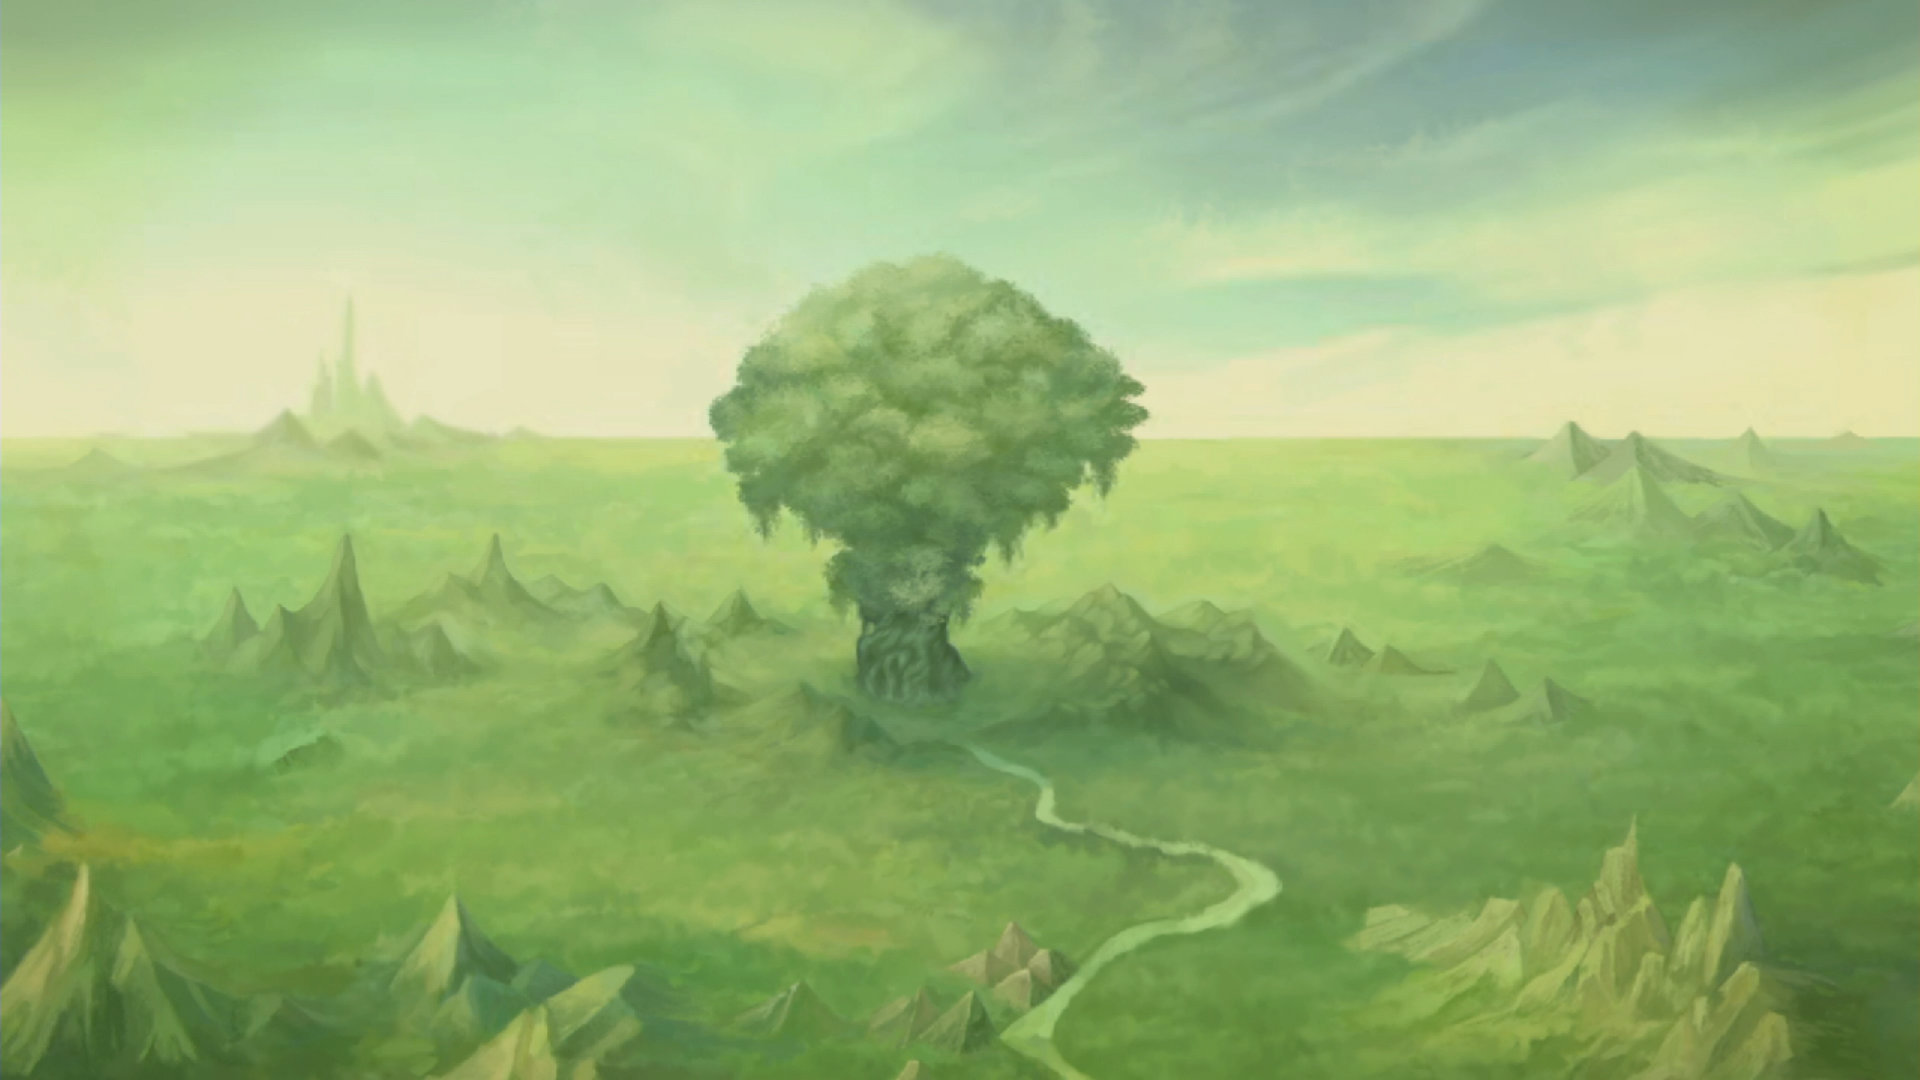 The Mana Tree stands out in the forest crater.